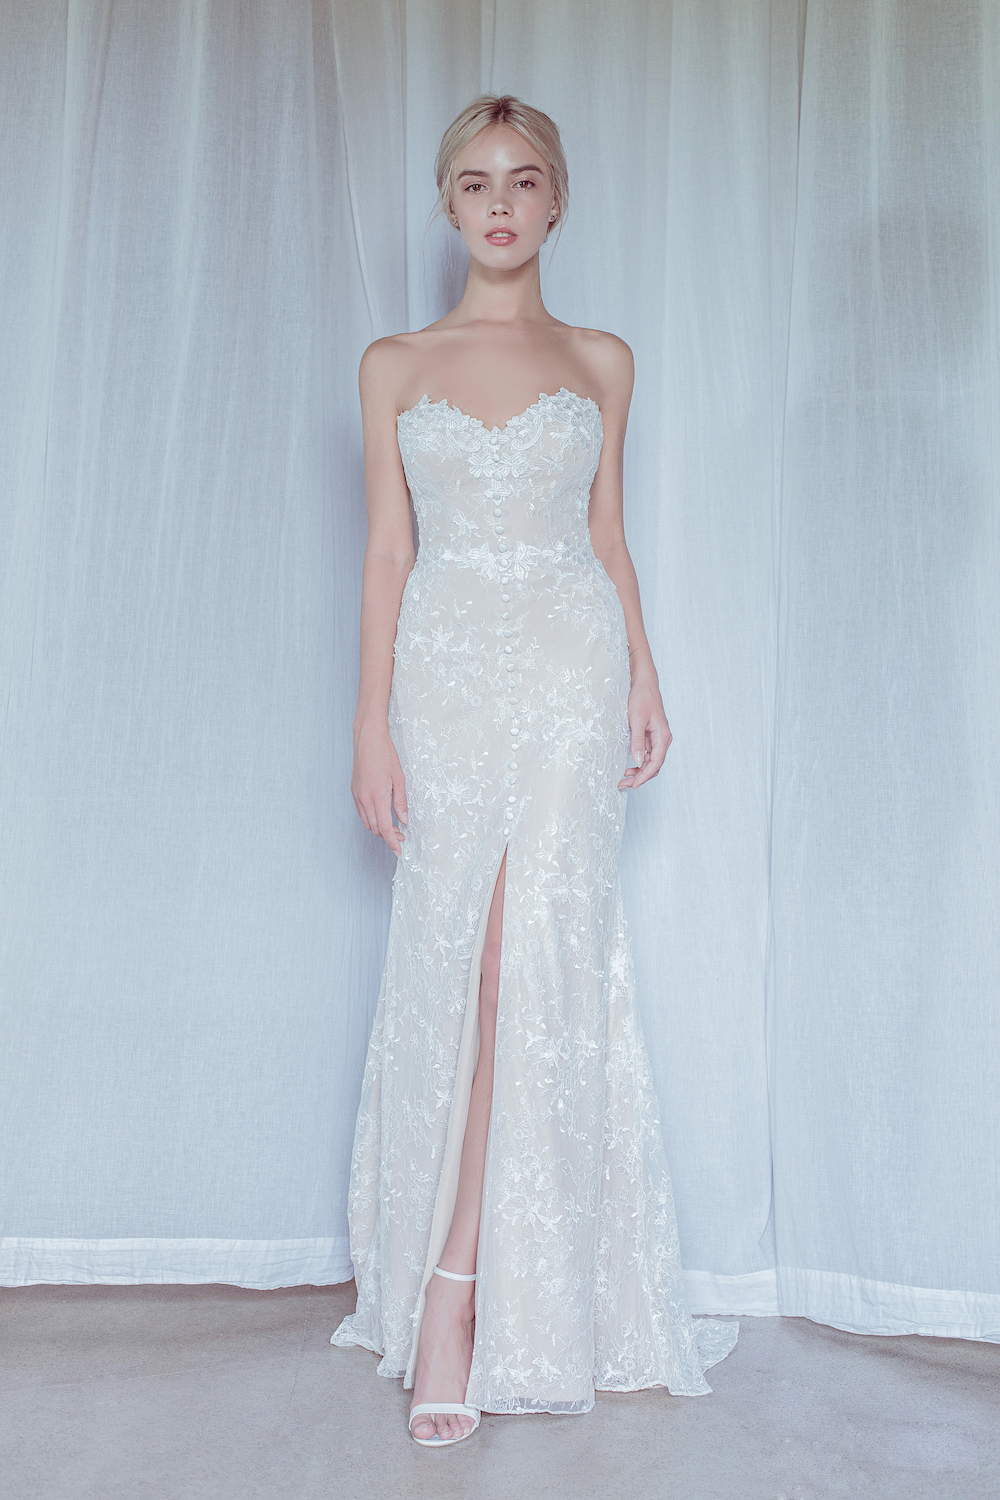 Cabo Wedding Dress Oui The Label 2018 Stolen Moments Bridal Collection featured on LOVE FIND CO.